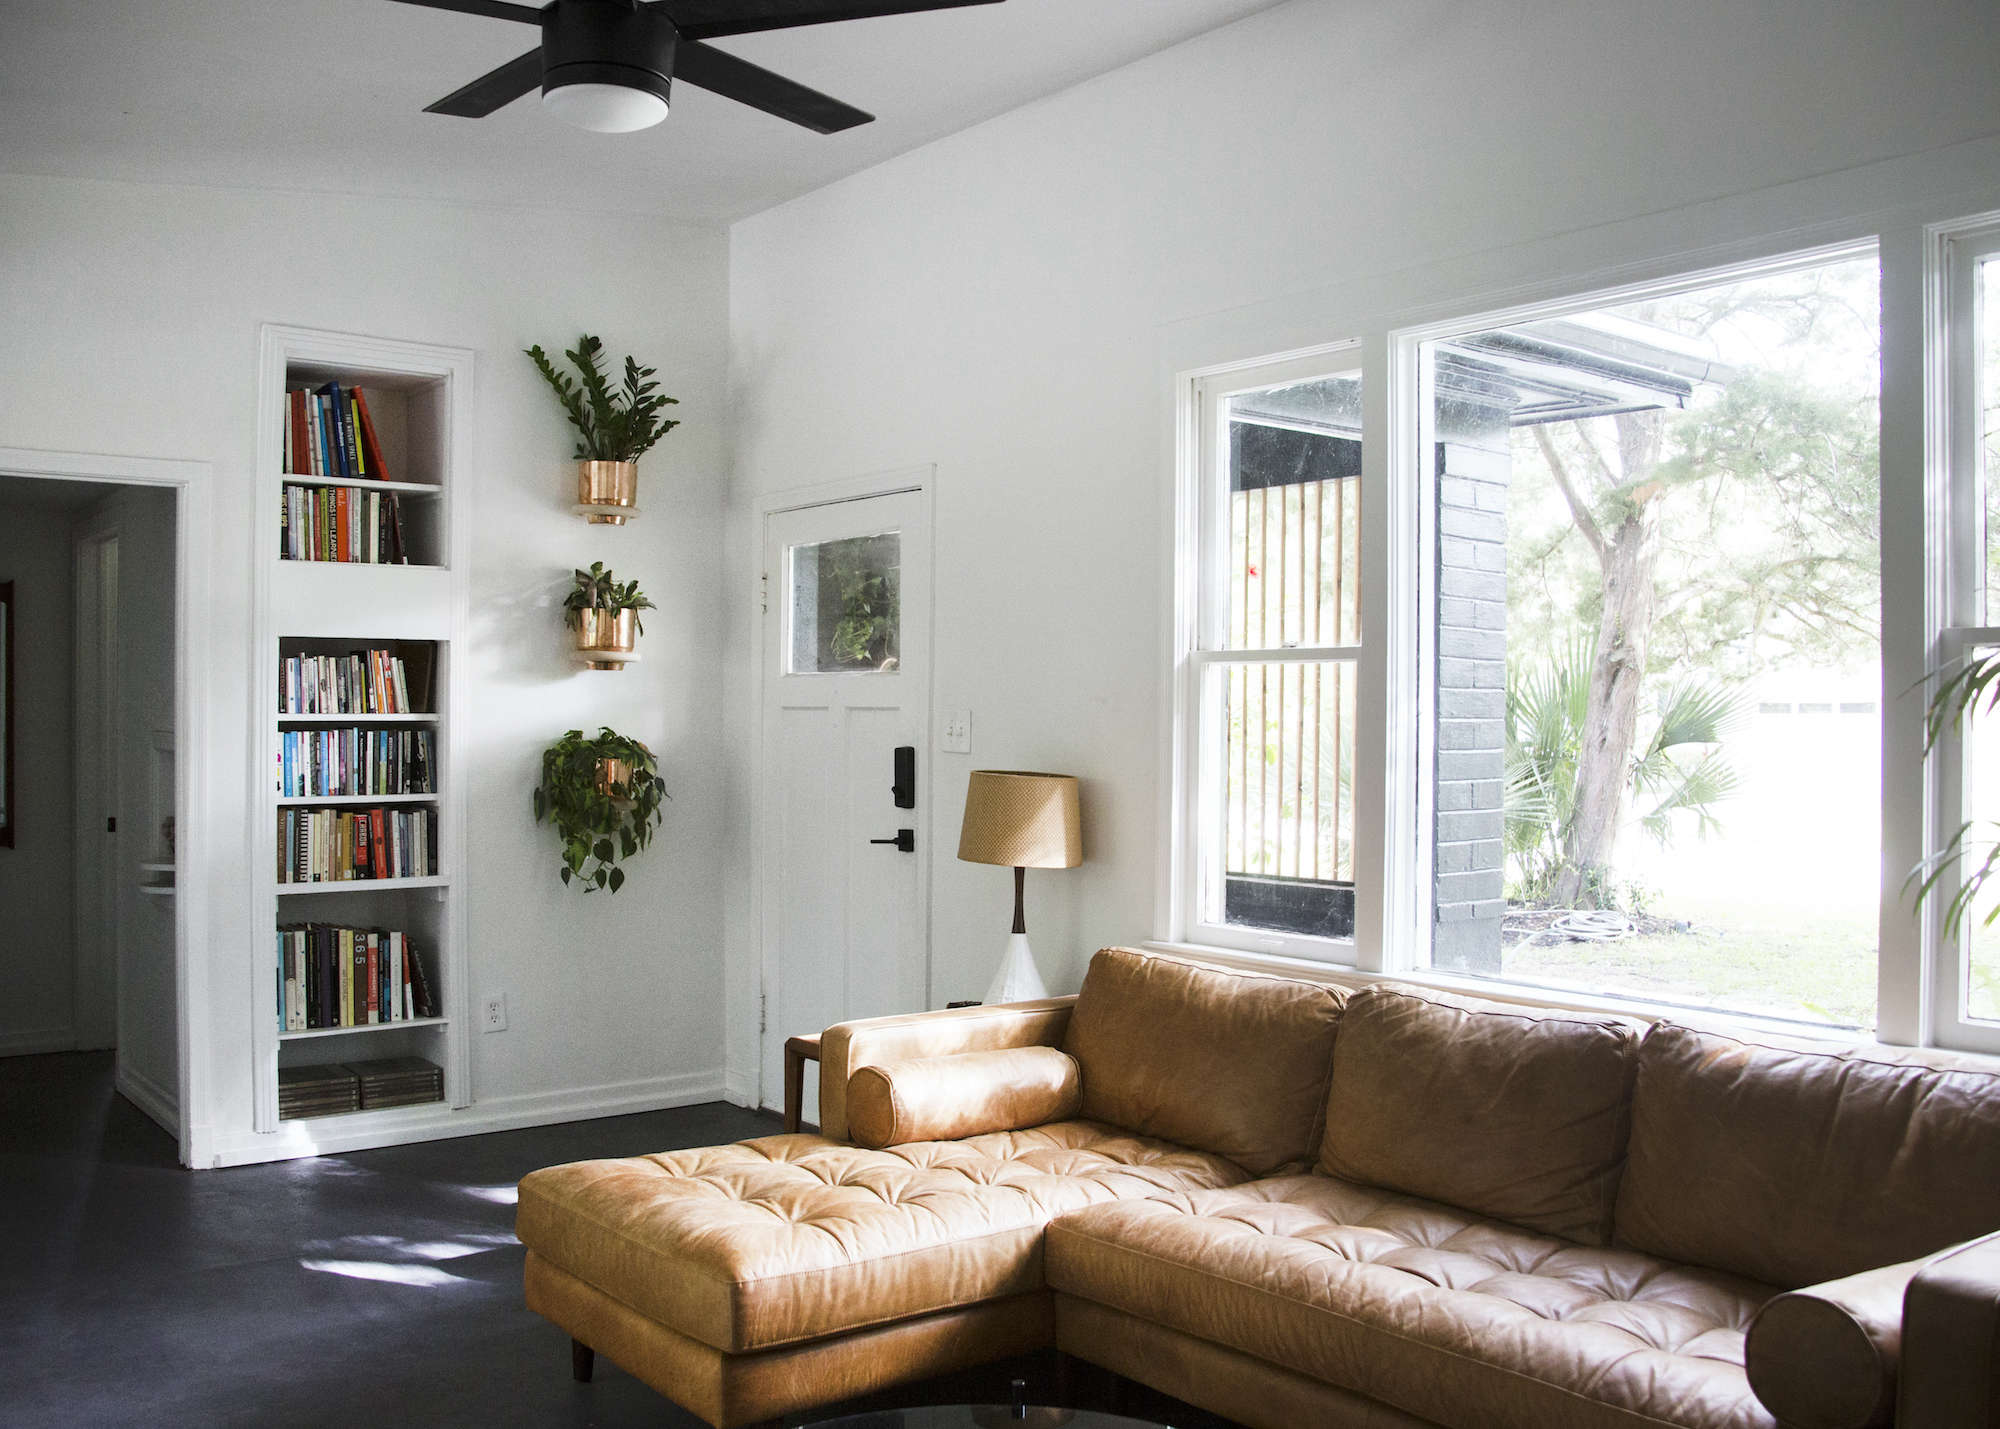 living-room-brown-leather-couch-plants-copper-pots